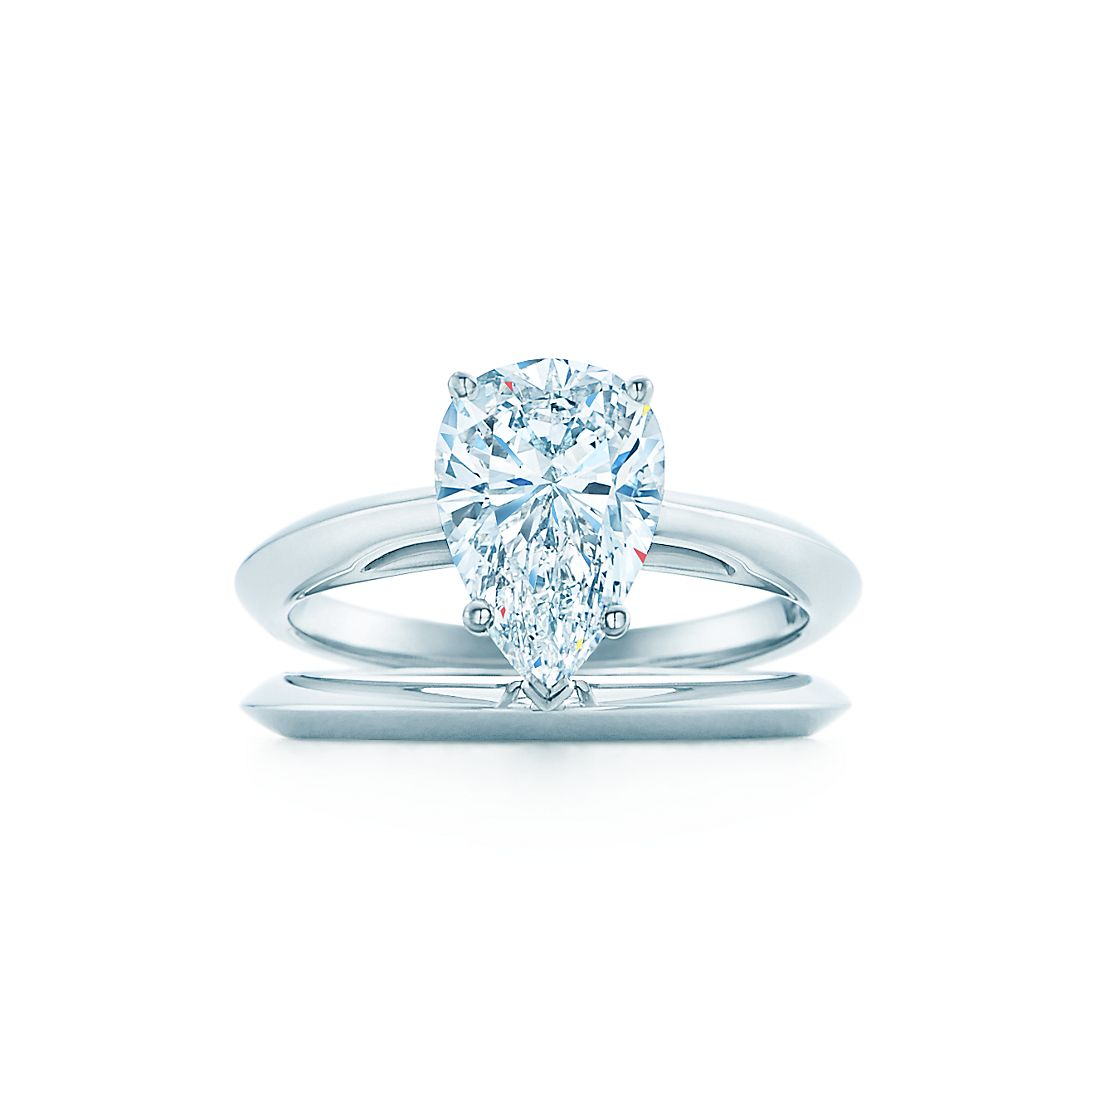 t ct v wang rings engagement love double collection vera jewellers shaped pear c wedding w twist peoples diamond frame